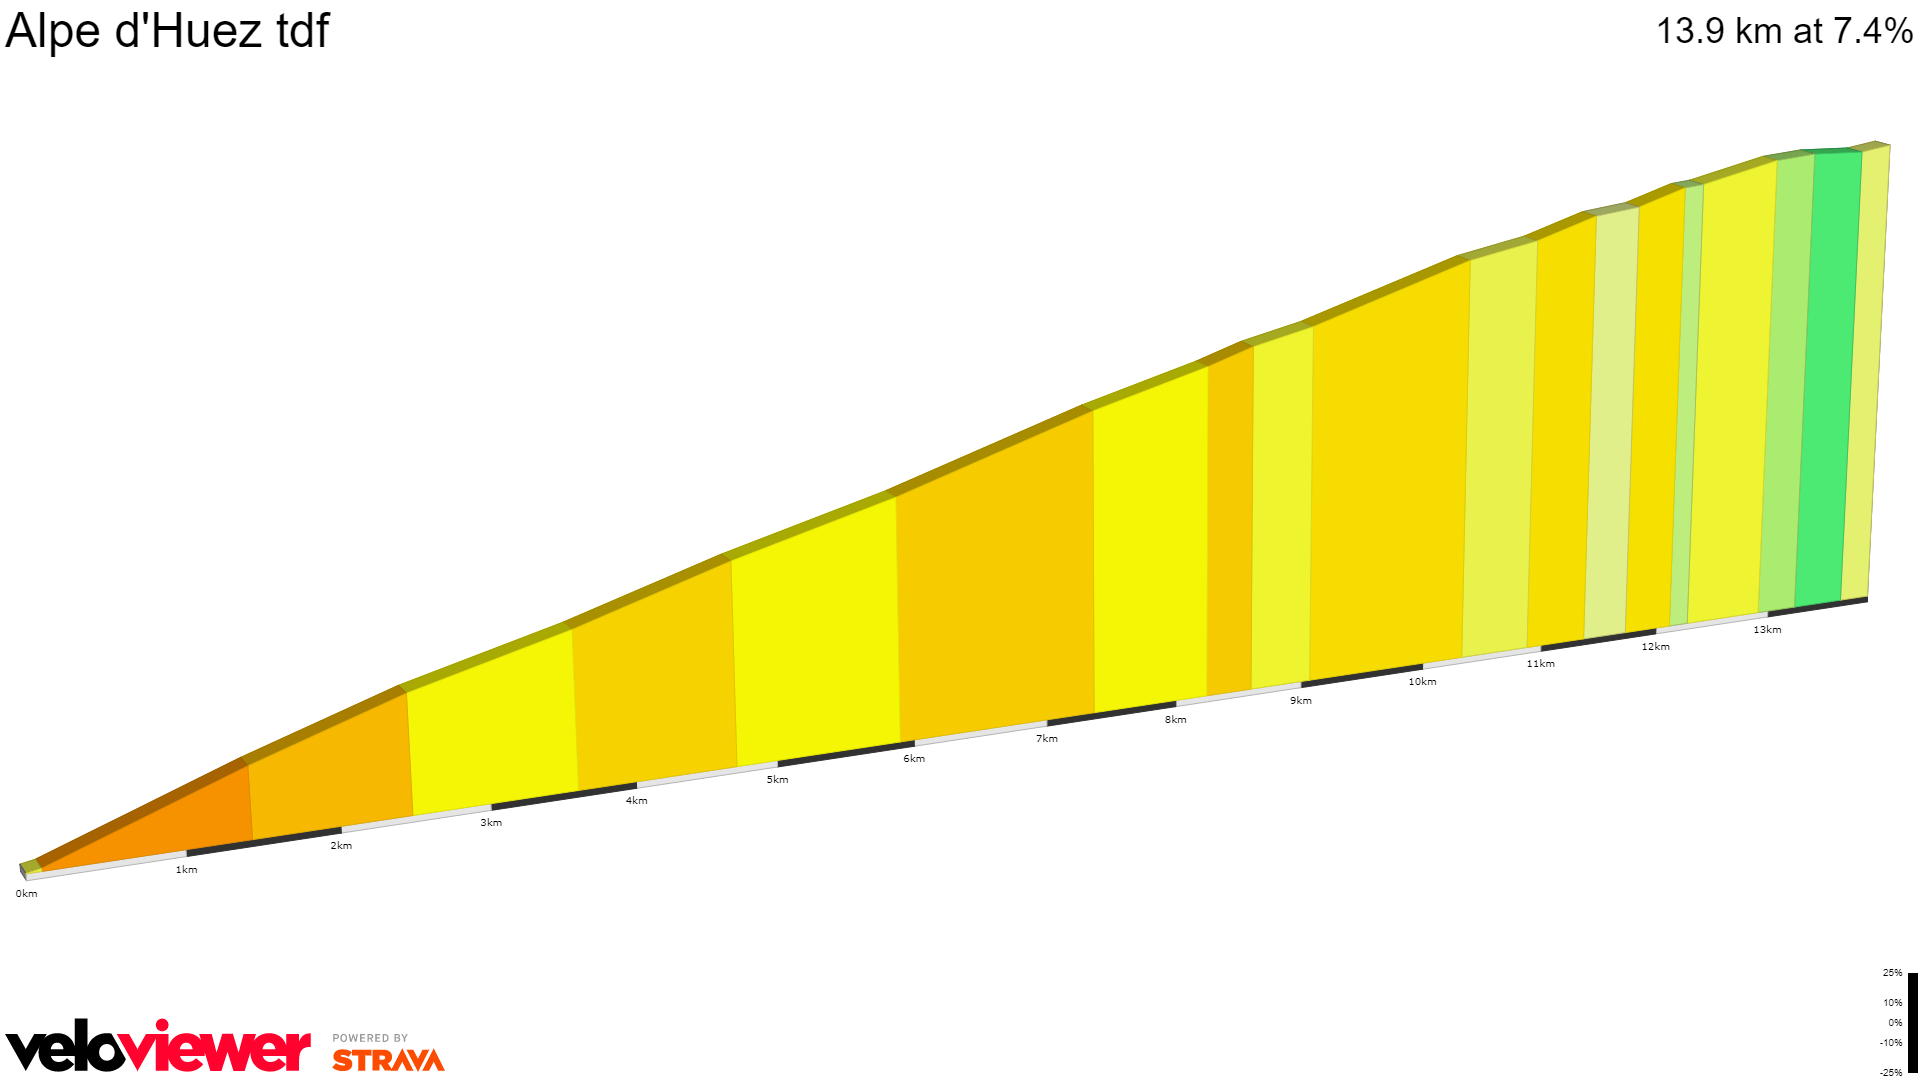 2D Elevation profile image for Alpe d'Huez tdf